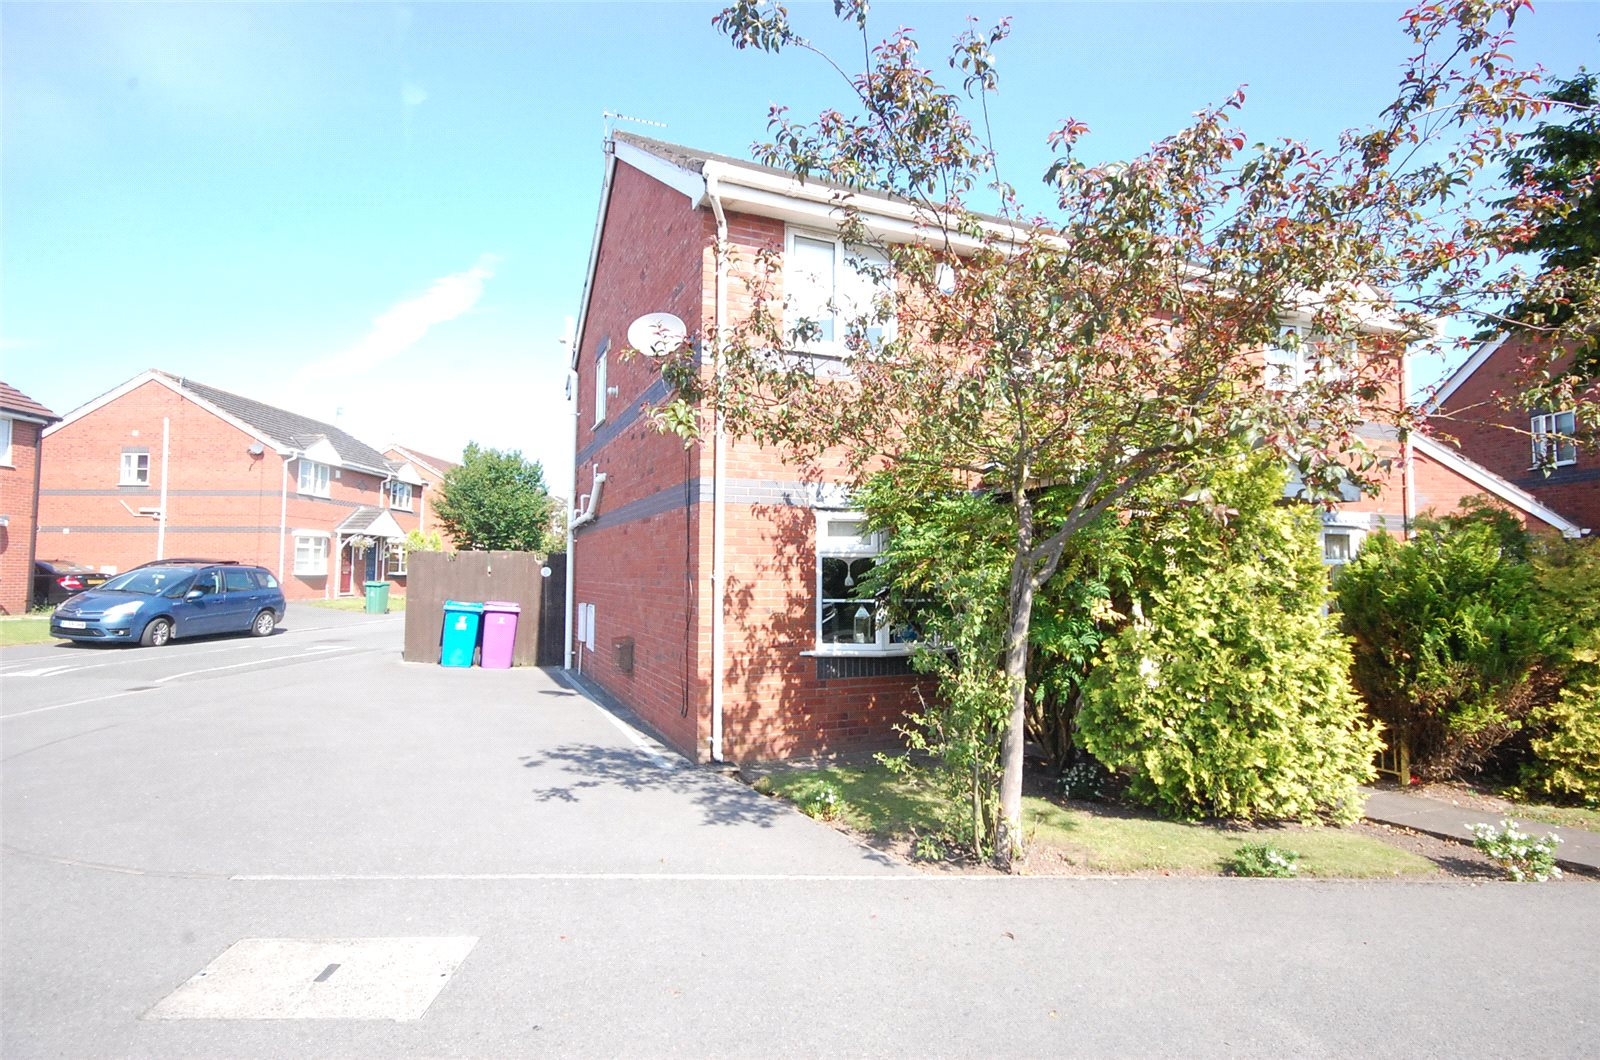 3 Bedrooms Semi Detached House for sale in Calderwood Park, Netherley, Liverpool, L27